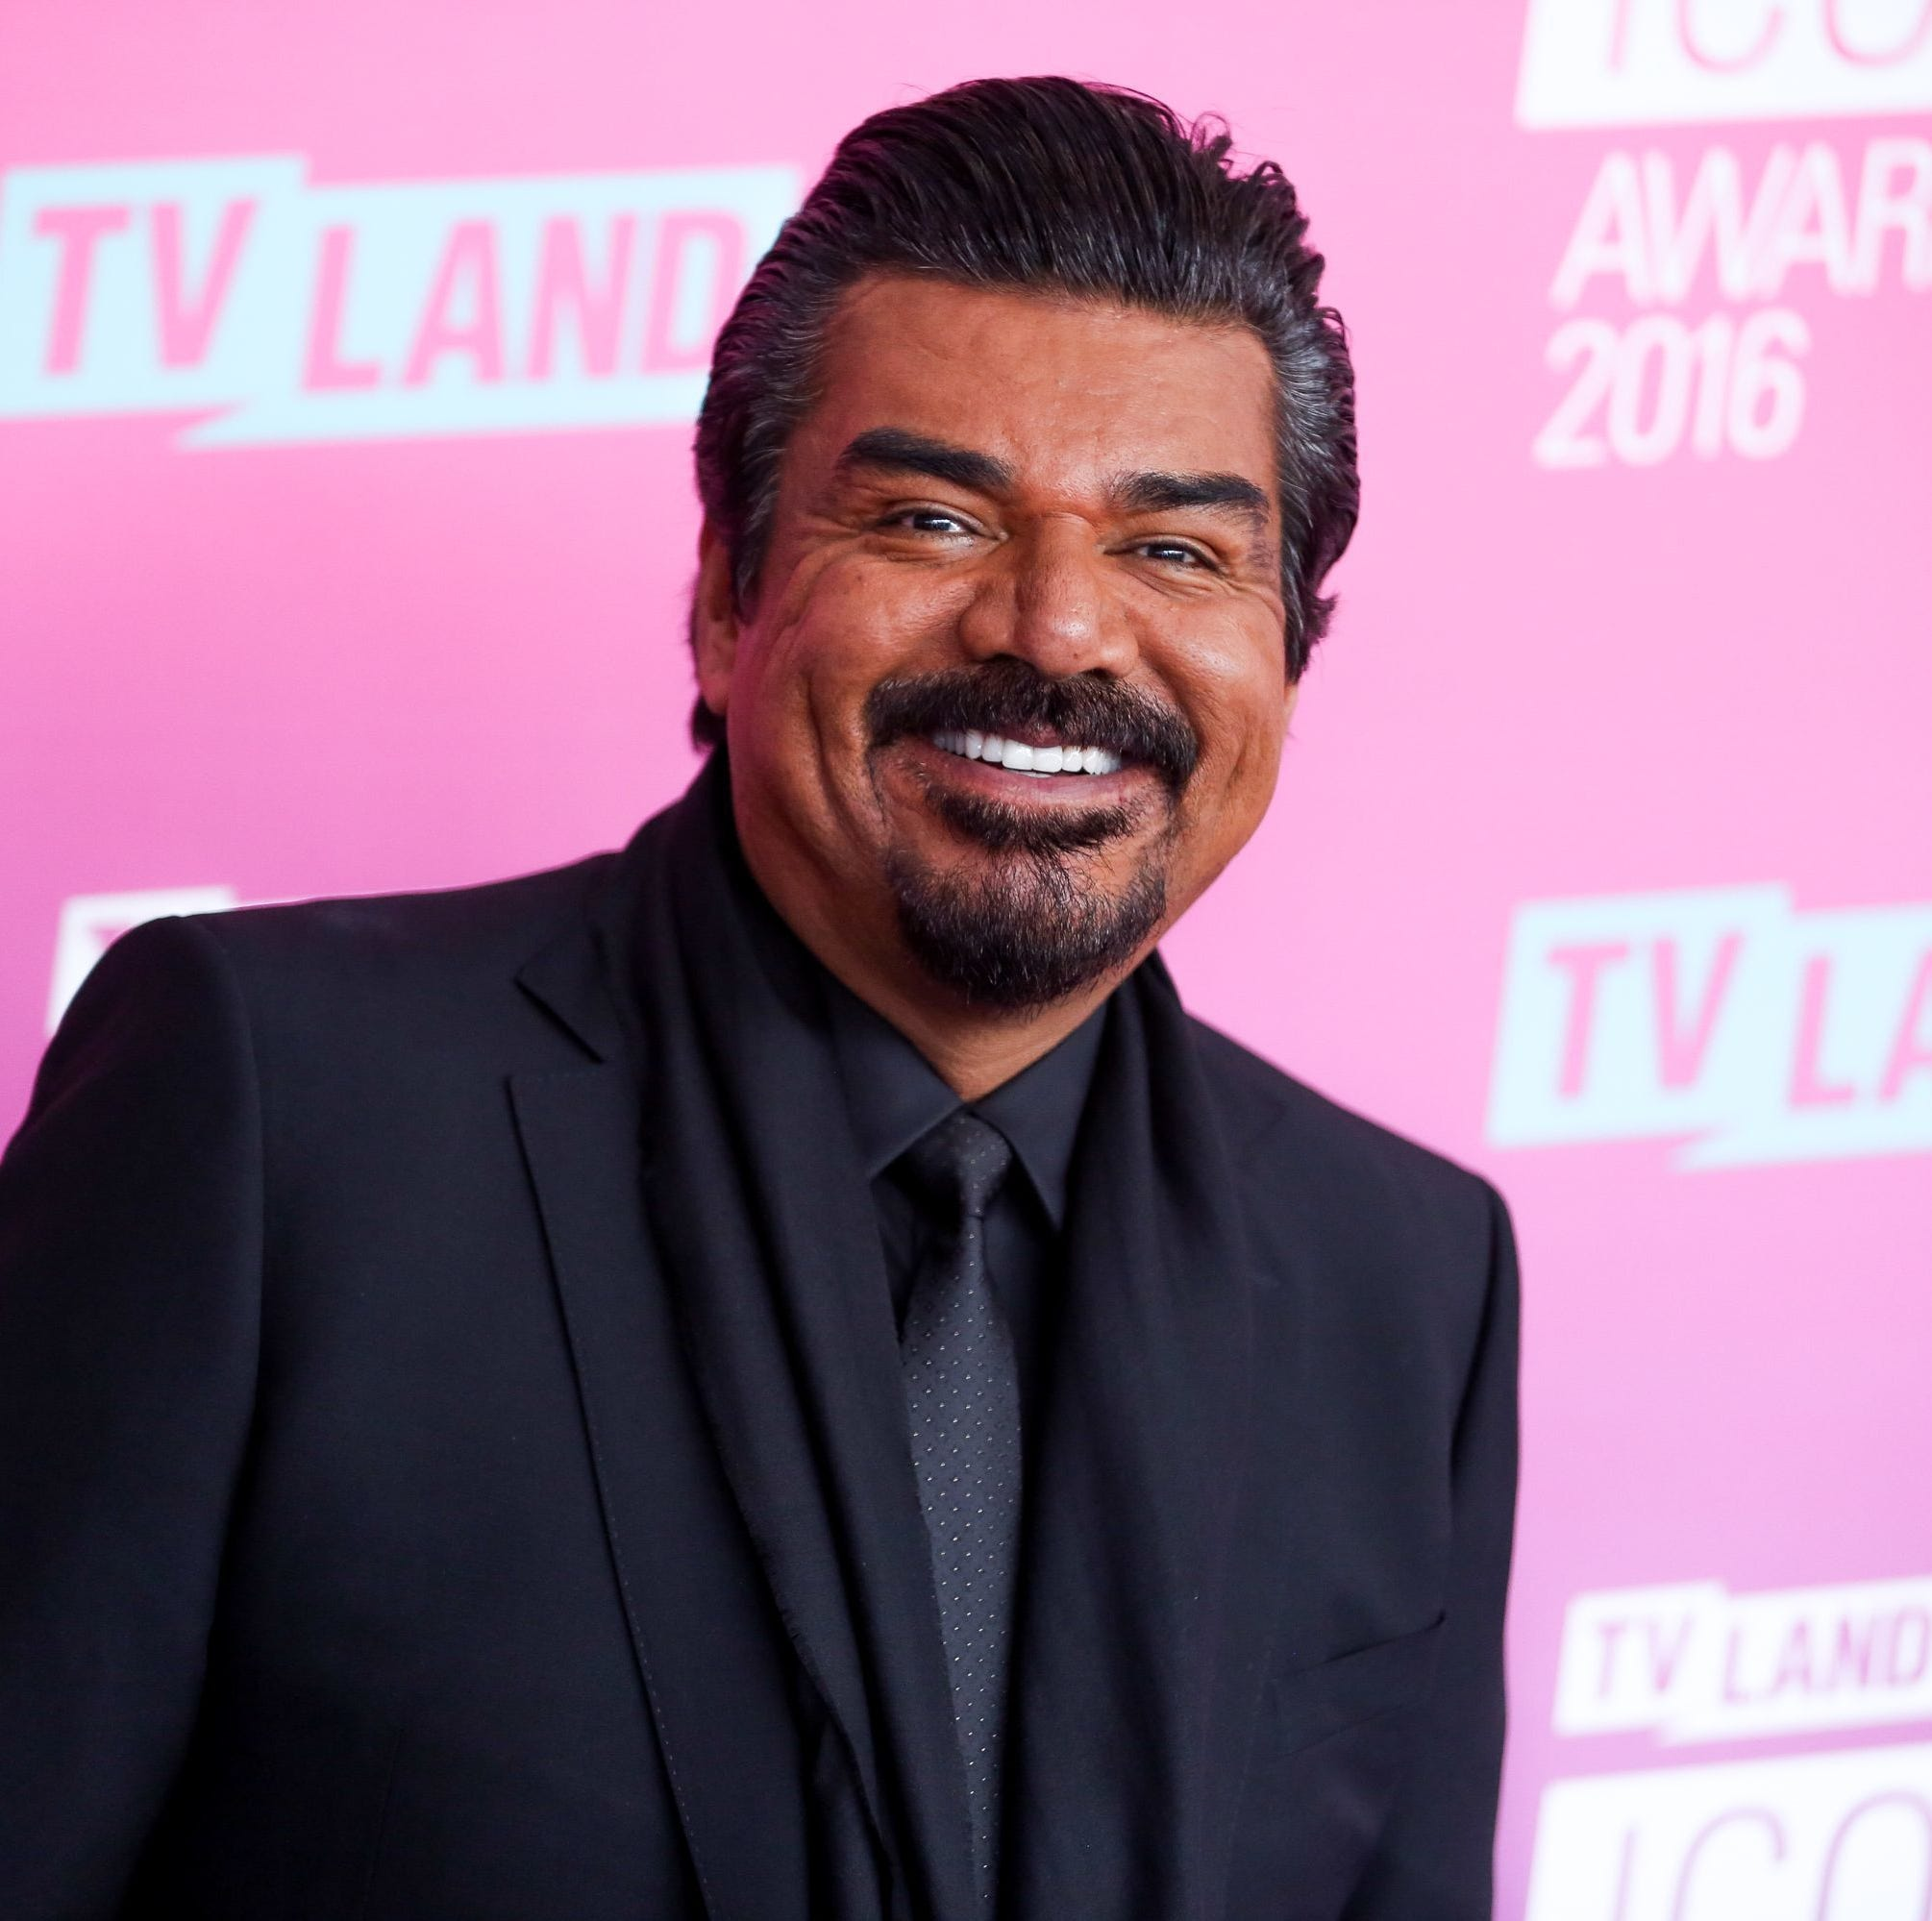 George Lopez, Kenny Chesney highlight hottest shows in Florida in early April - Hot Ticket